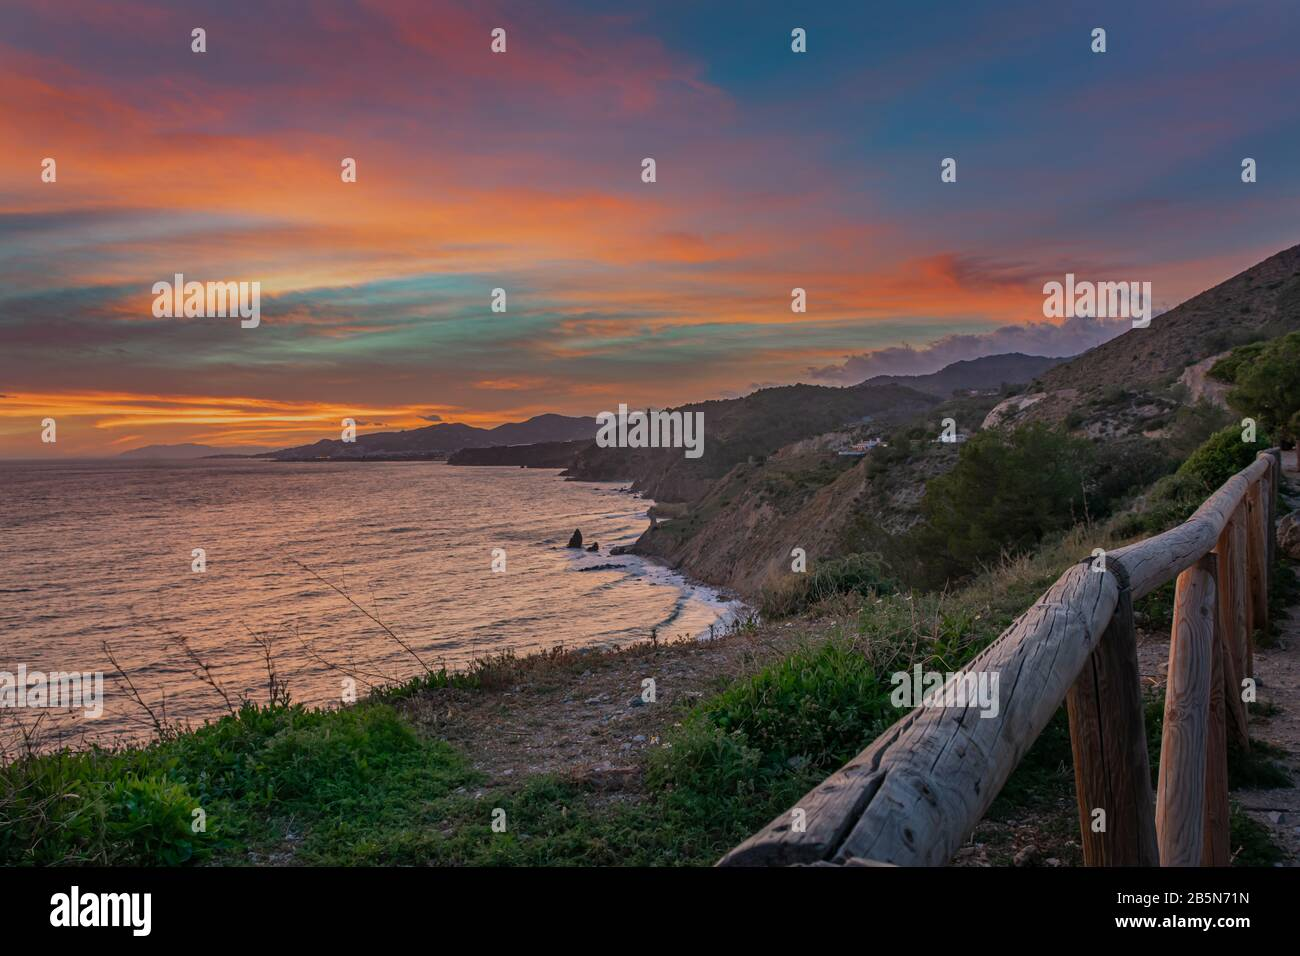 Landscape of a rocky coast with sunset colors Stock Photo